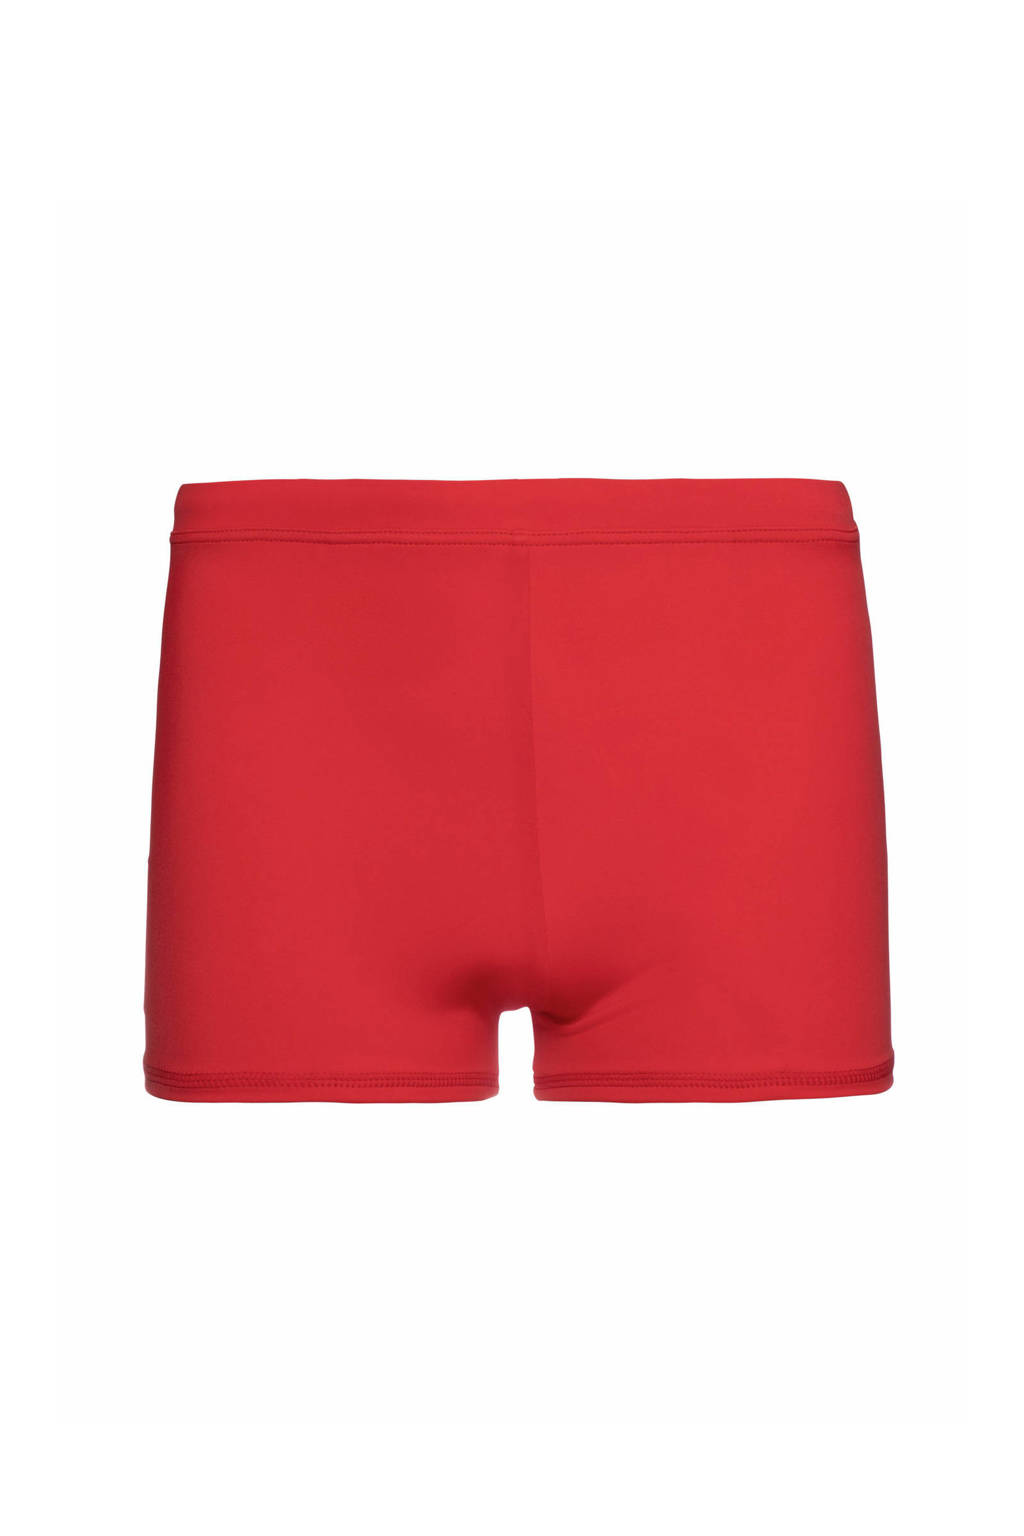 Protest zwemboxer Carst rood, Poppy Red